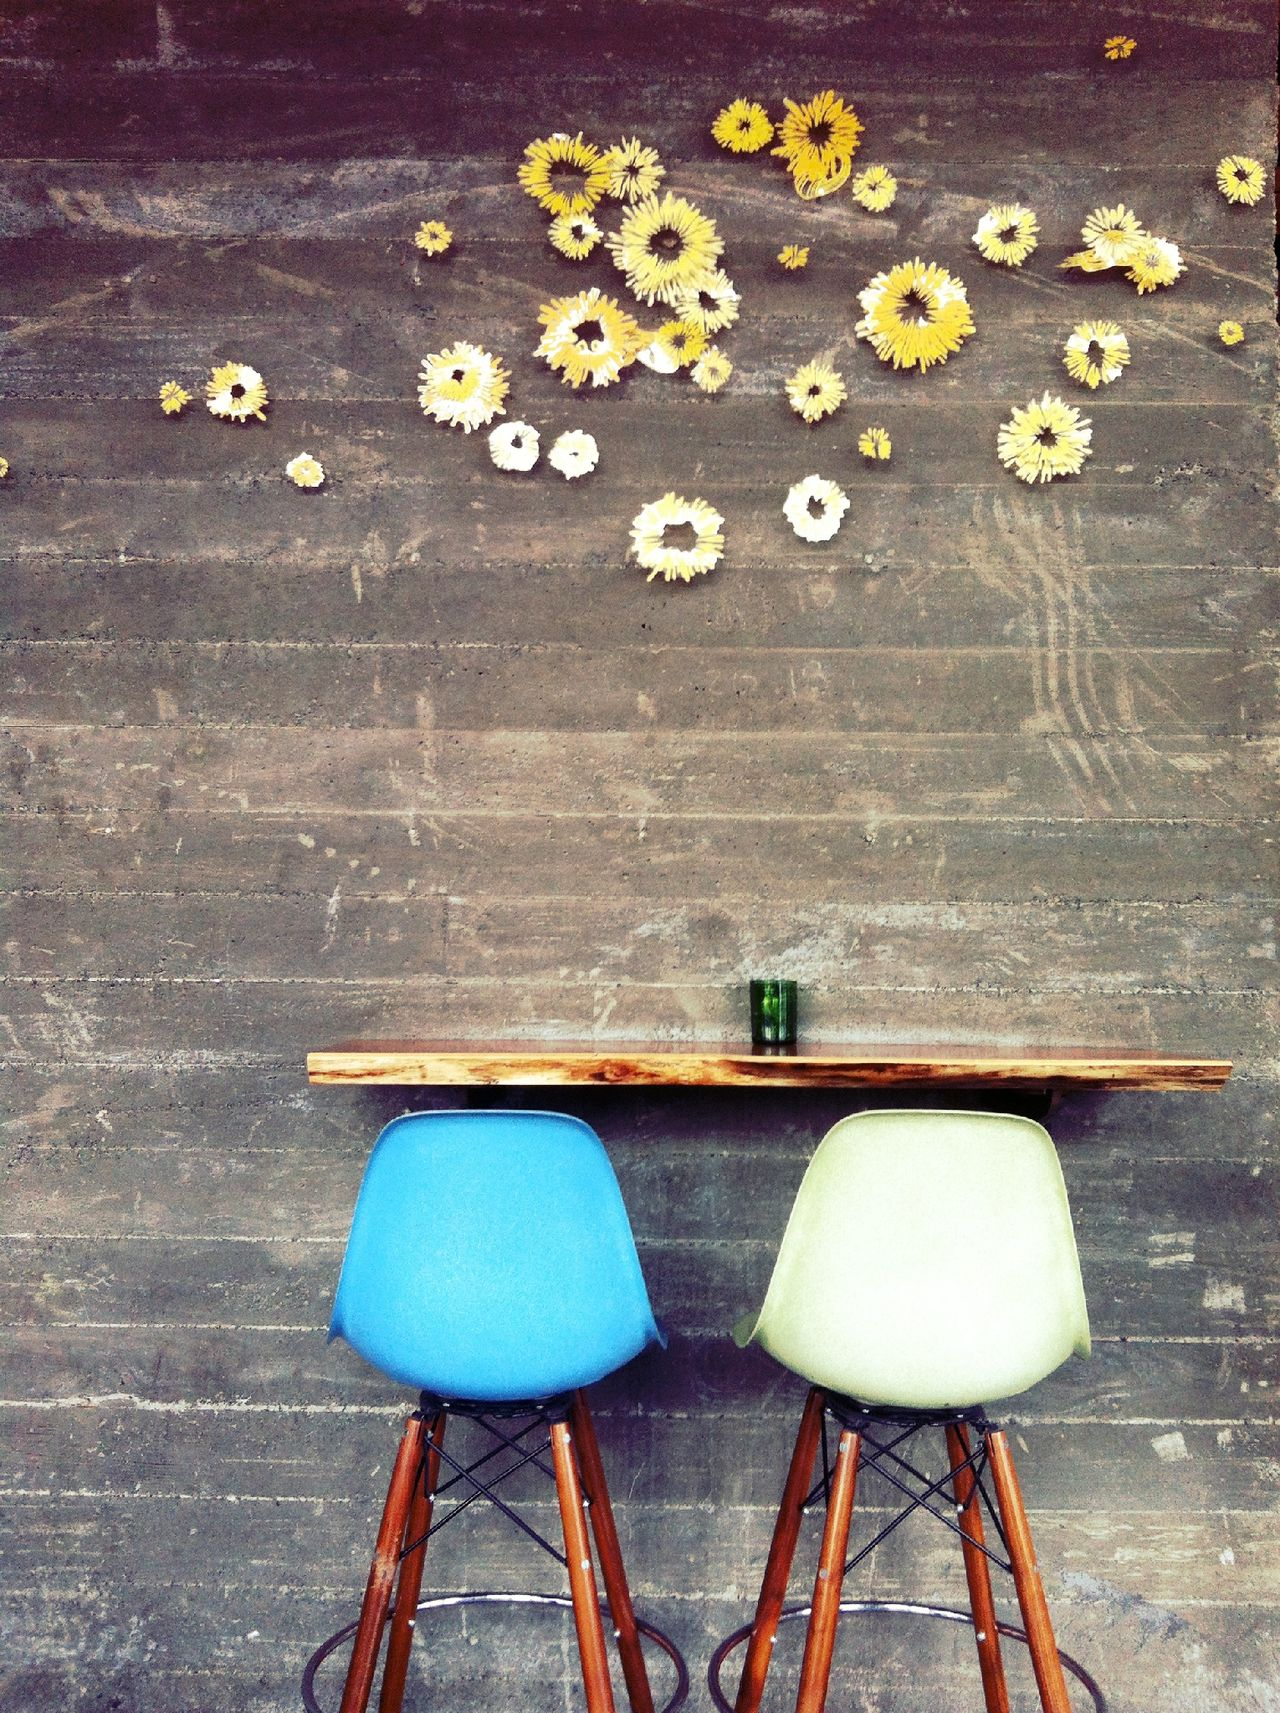 Bar stools against wooden wall